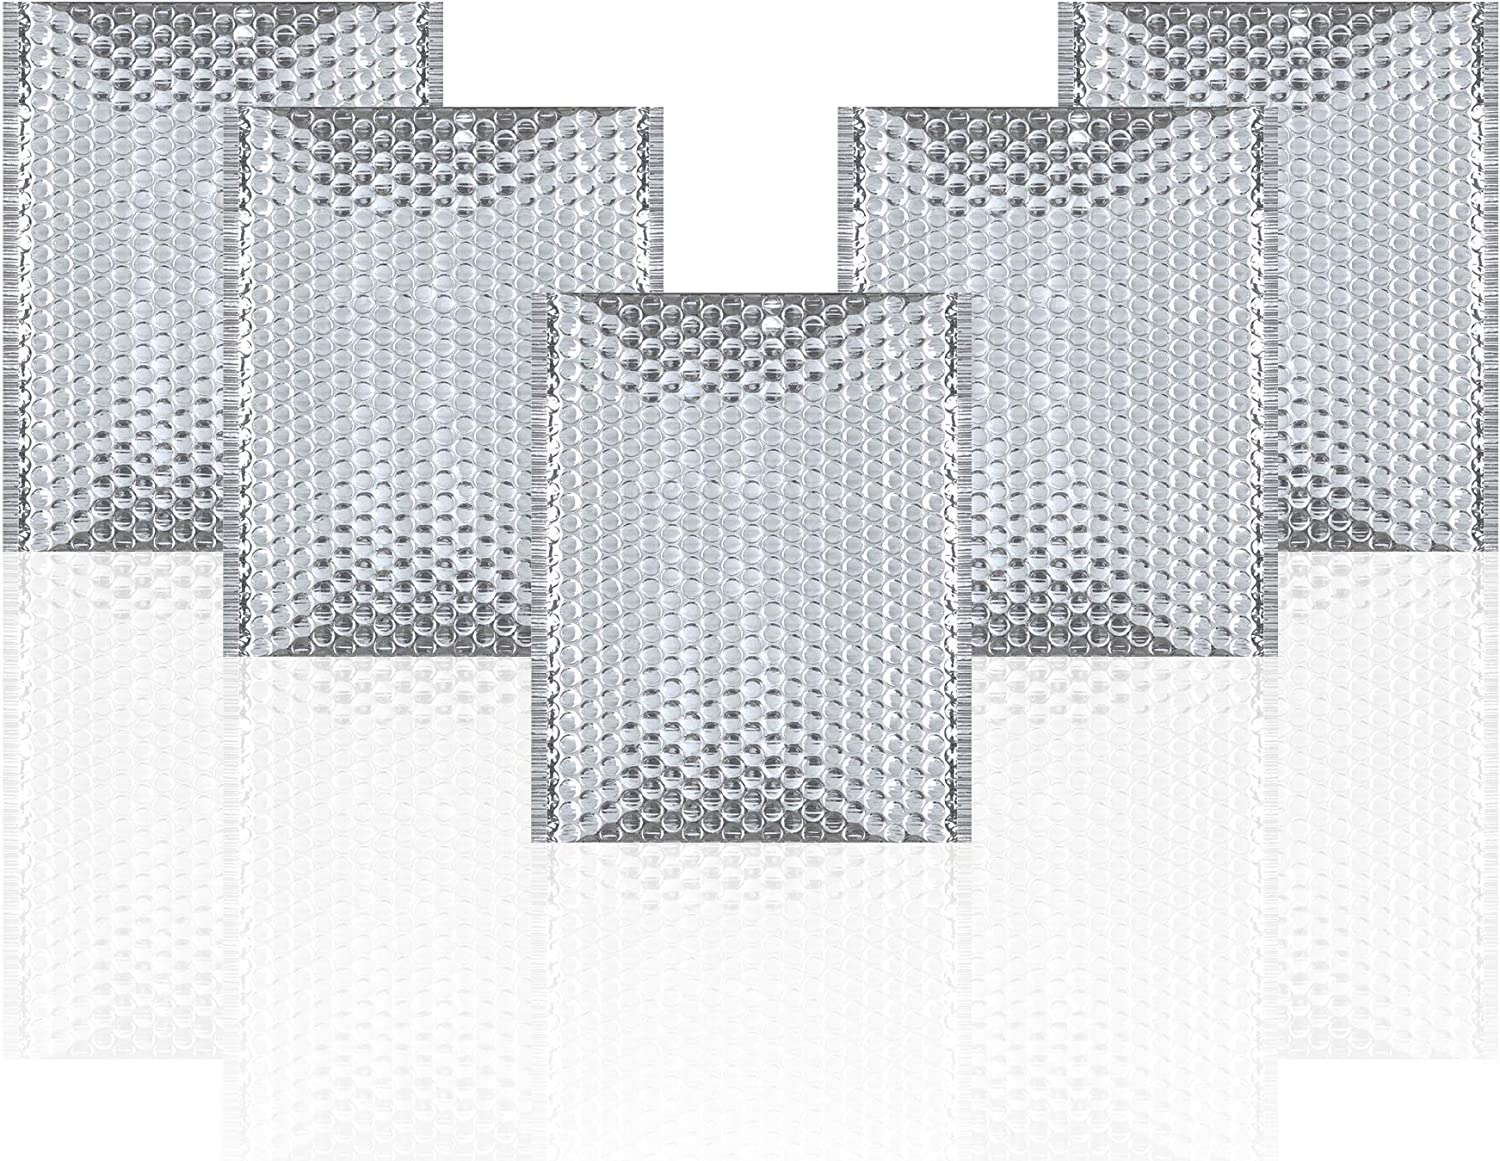 Thermal Insulated Bubble Mailers 11x15 Food Grade Padded Envelopes 11 x 15 Pack of 10 Silver Cushion Envelopes. Peel and Seal. Metallic Foil. Mailing, Shipping, Packing, Packaging